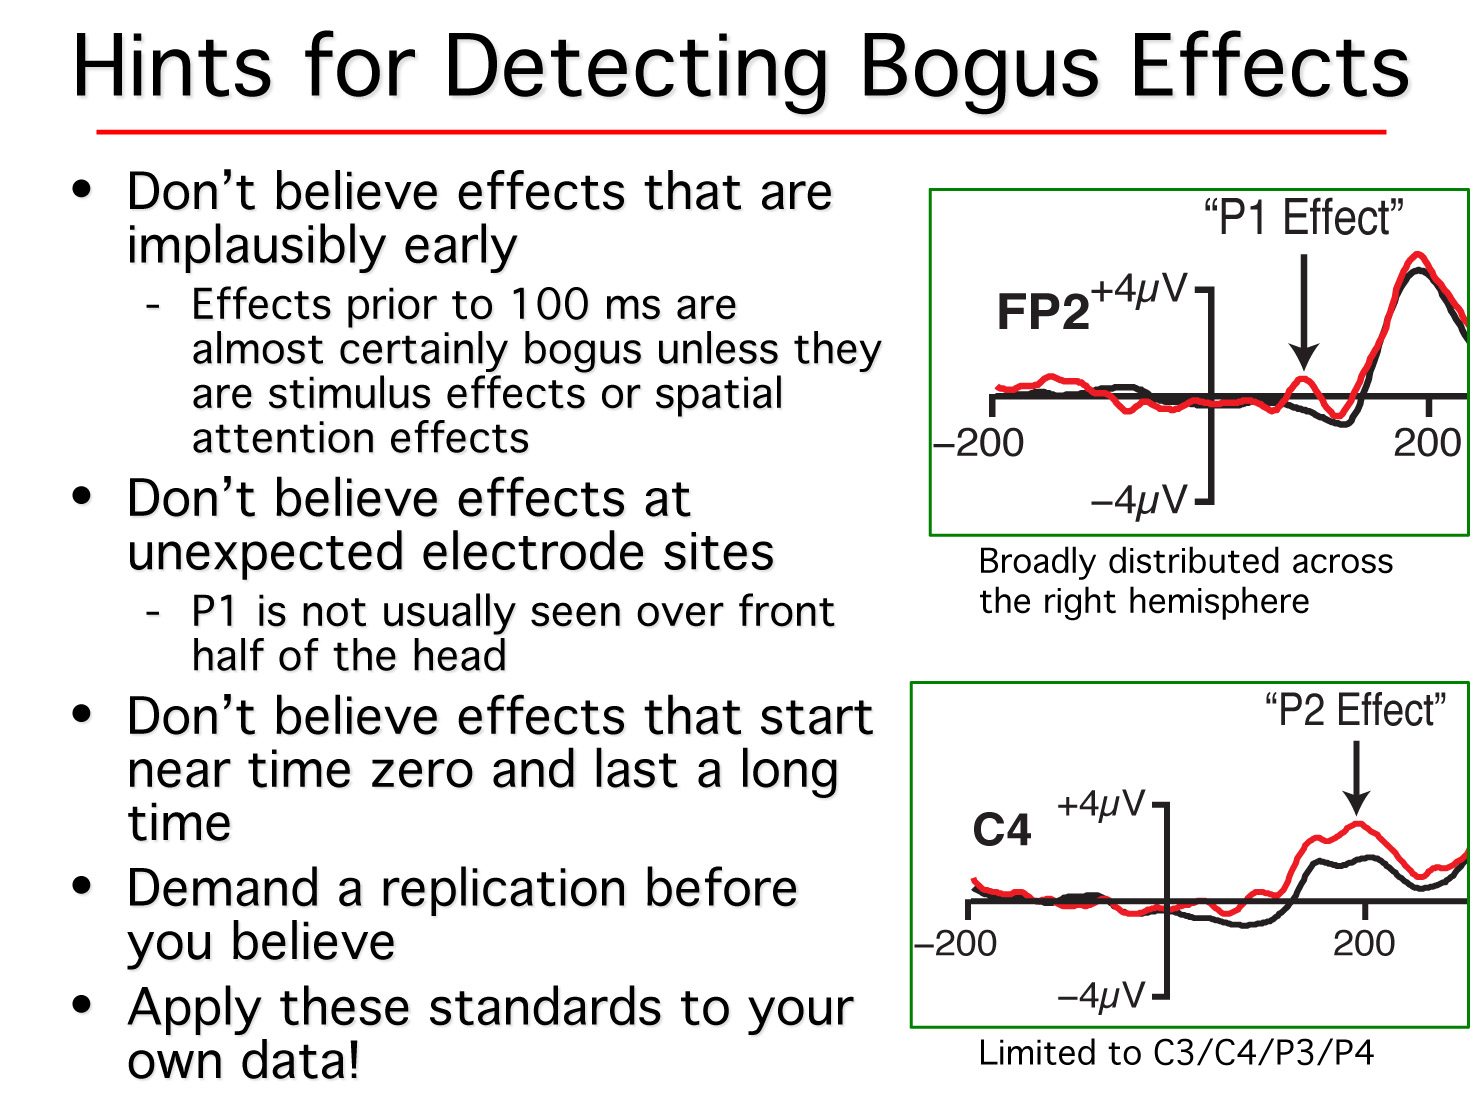 bogus effects.jpg